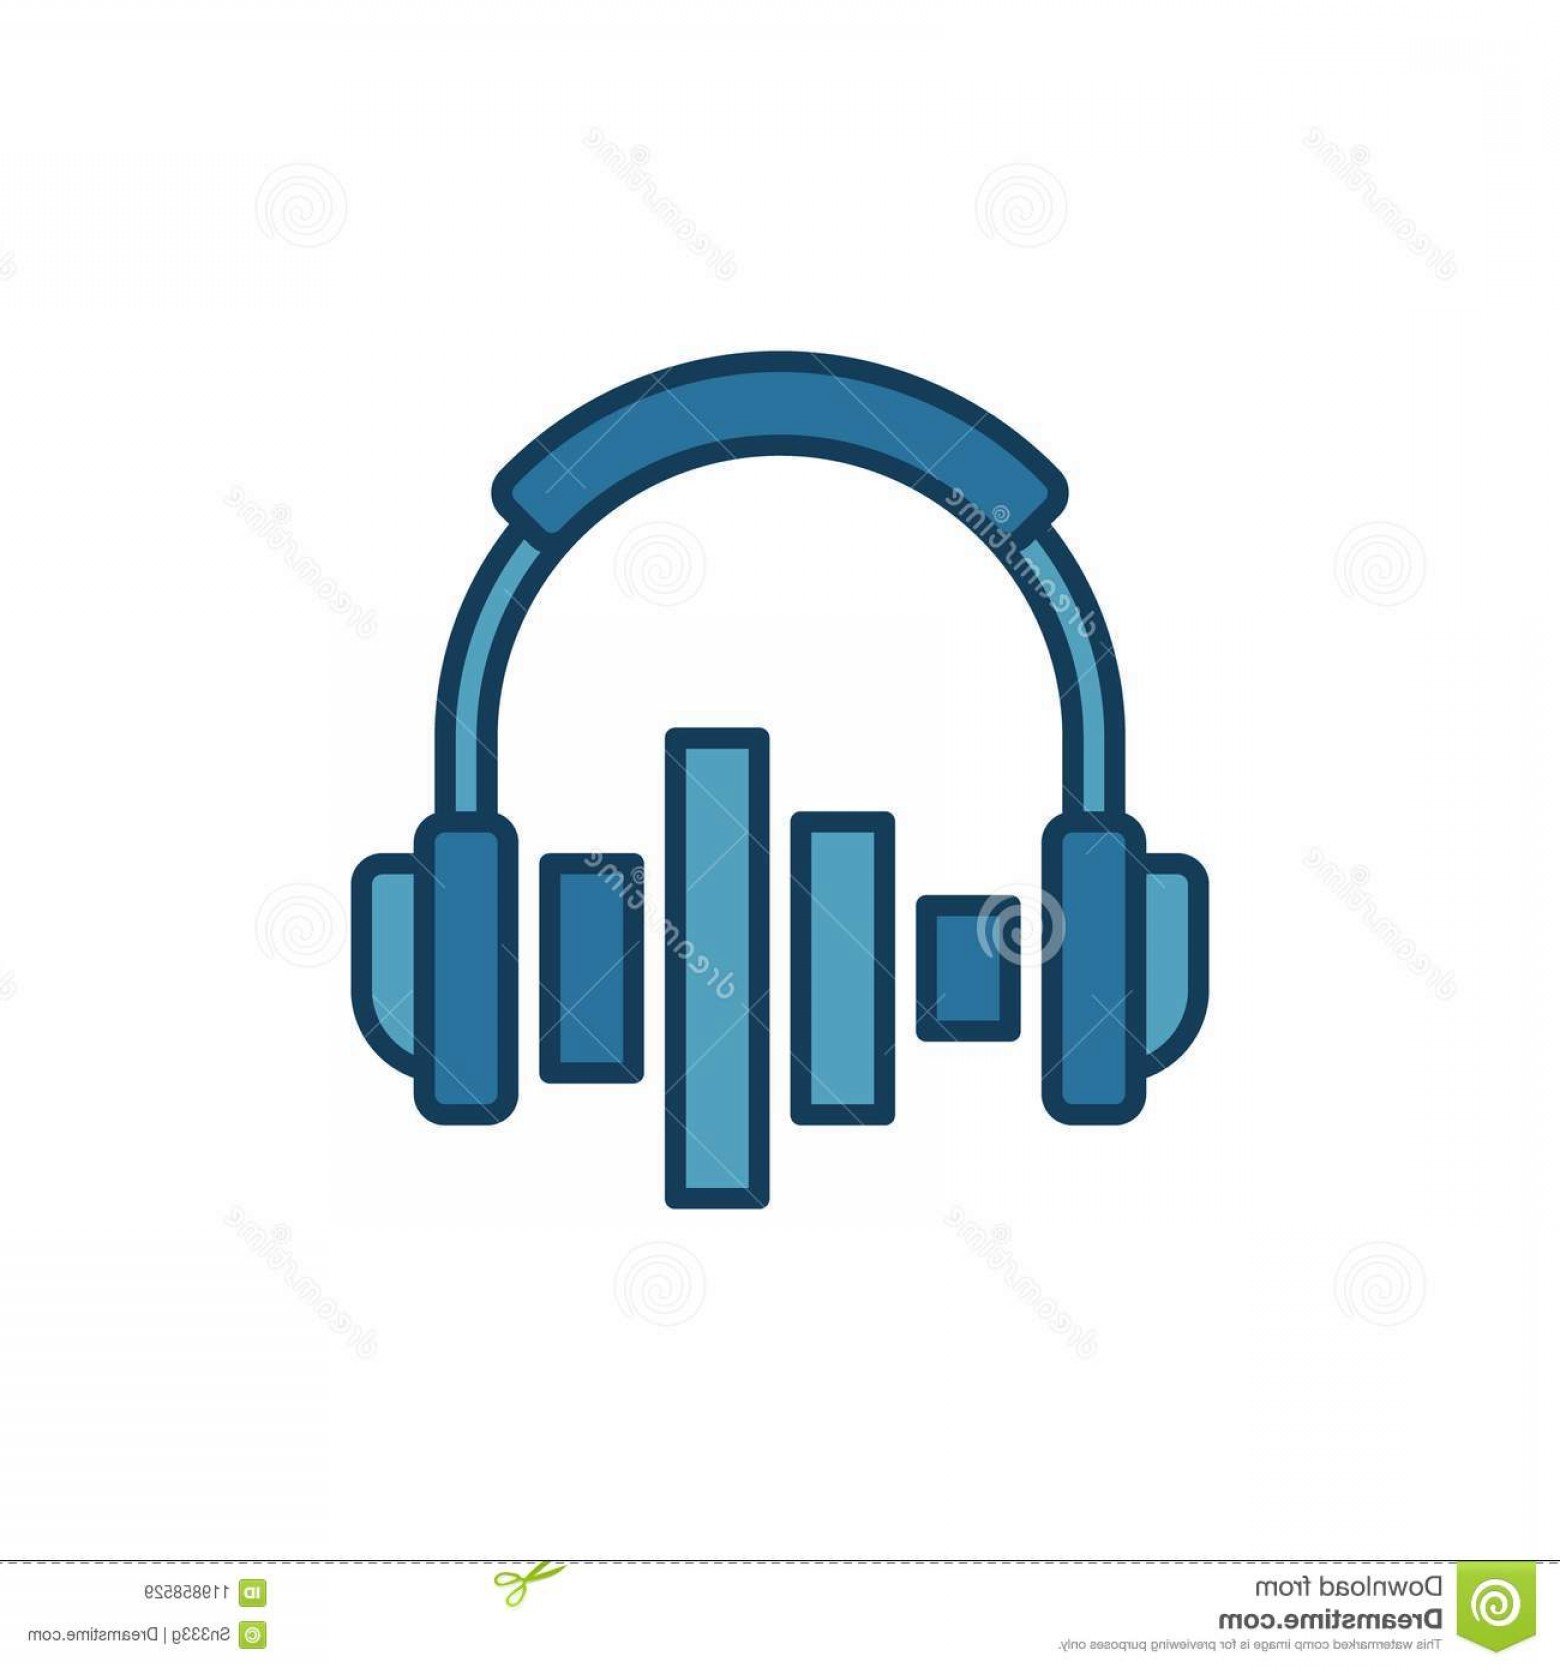 Equalizer Vector Icons: Ear Headphones Equalizer Vector Icon Symbol White Background Image